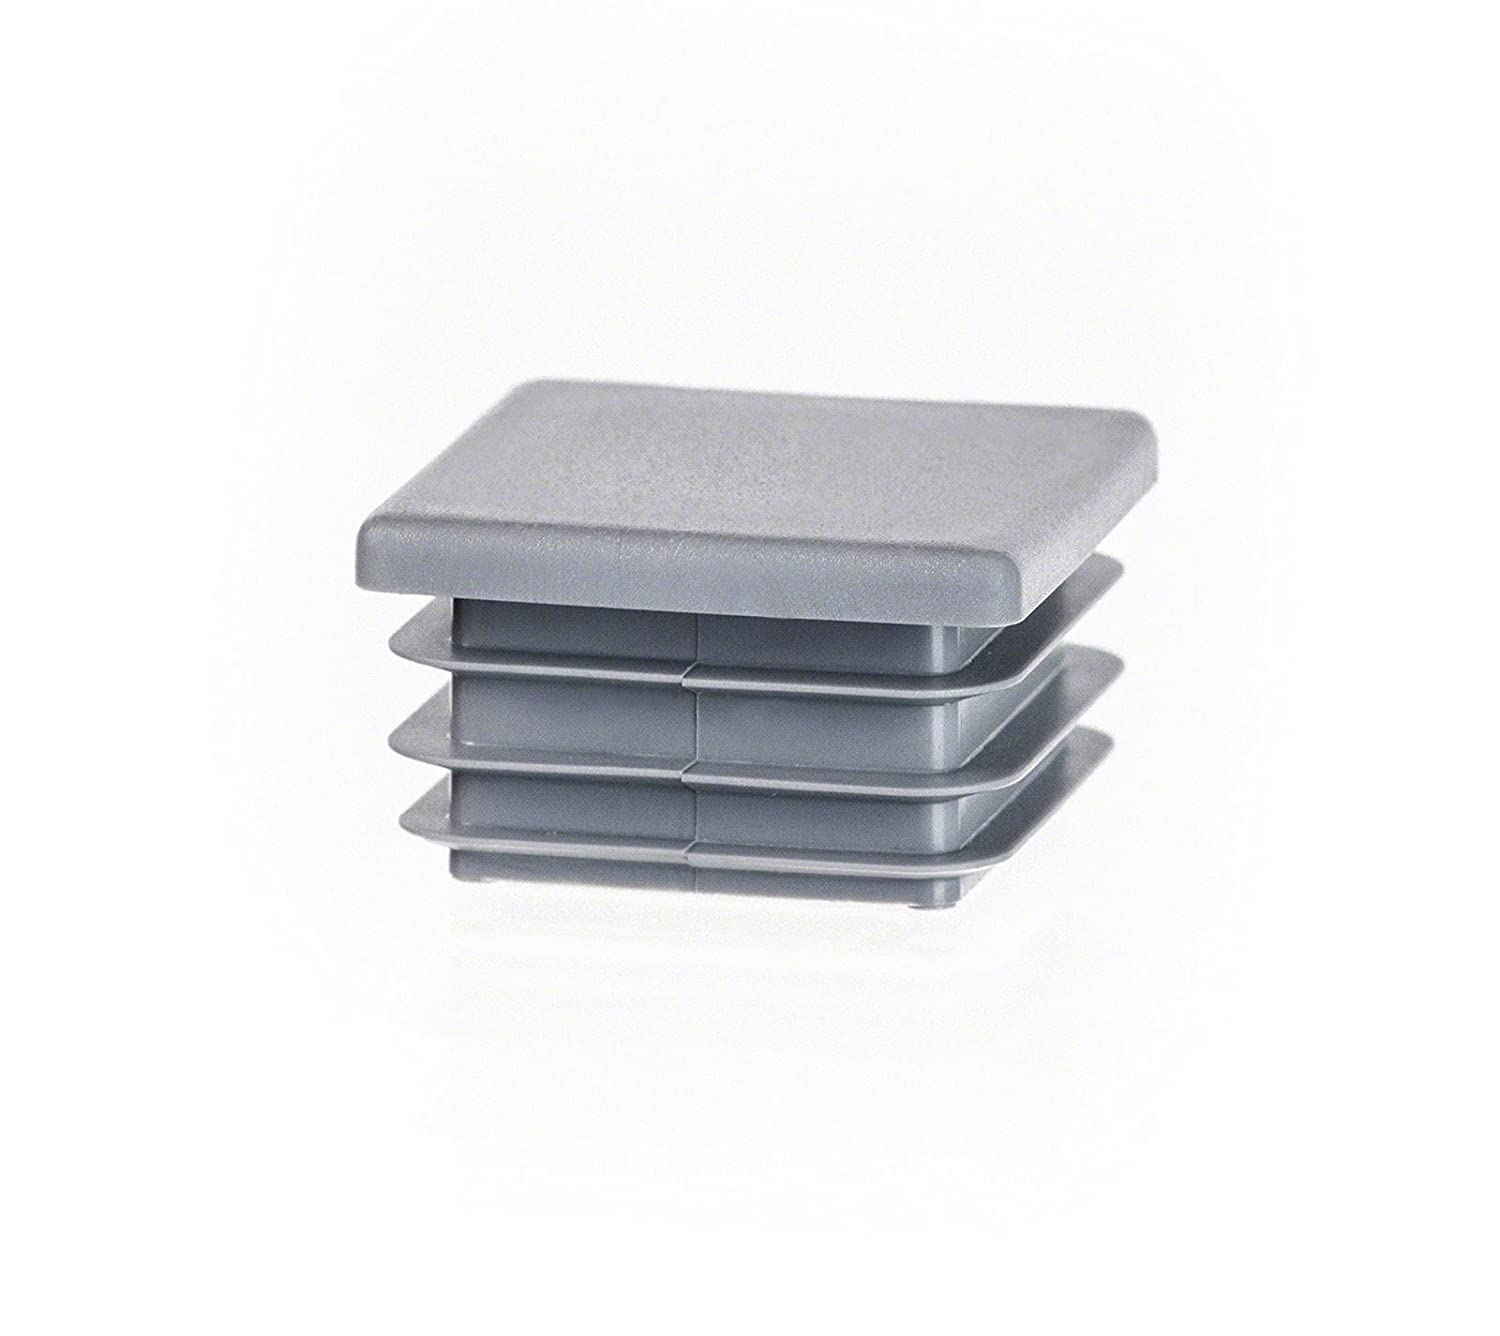 10 pcs. Square end Cap 70x70 mm (2 3/4 x 2 3/4 inch) Grey Plastic end caps Plugs EMFA